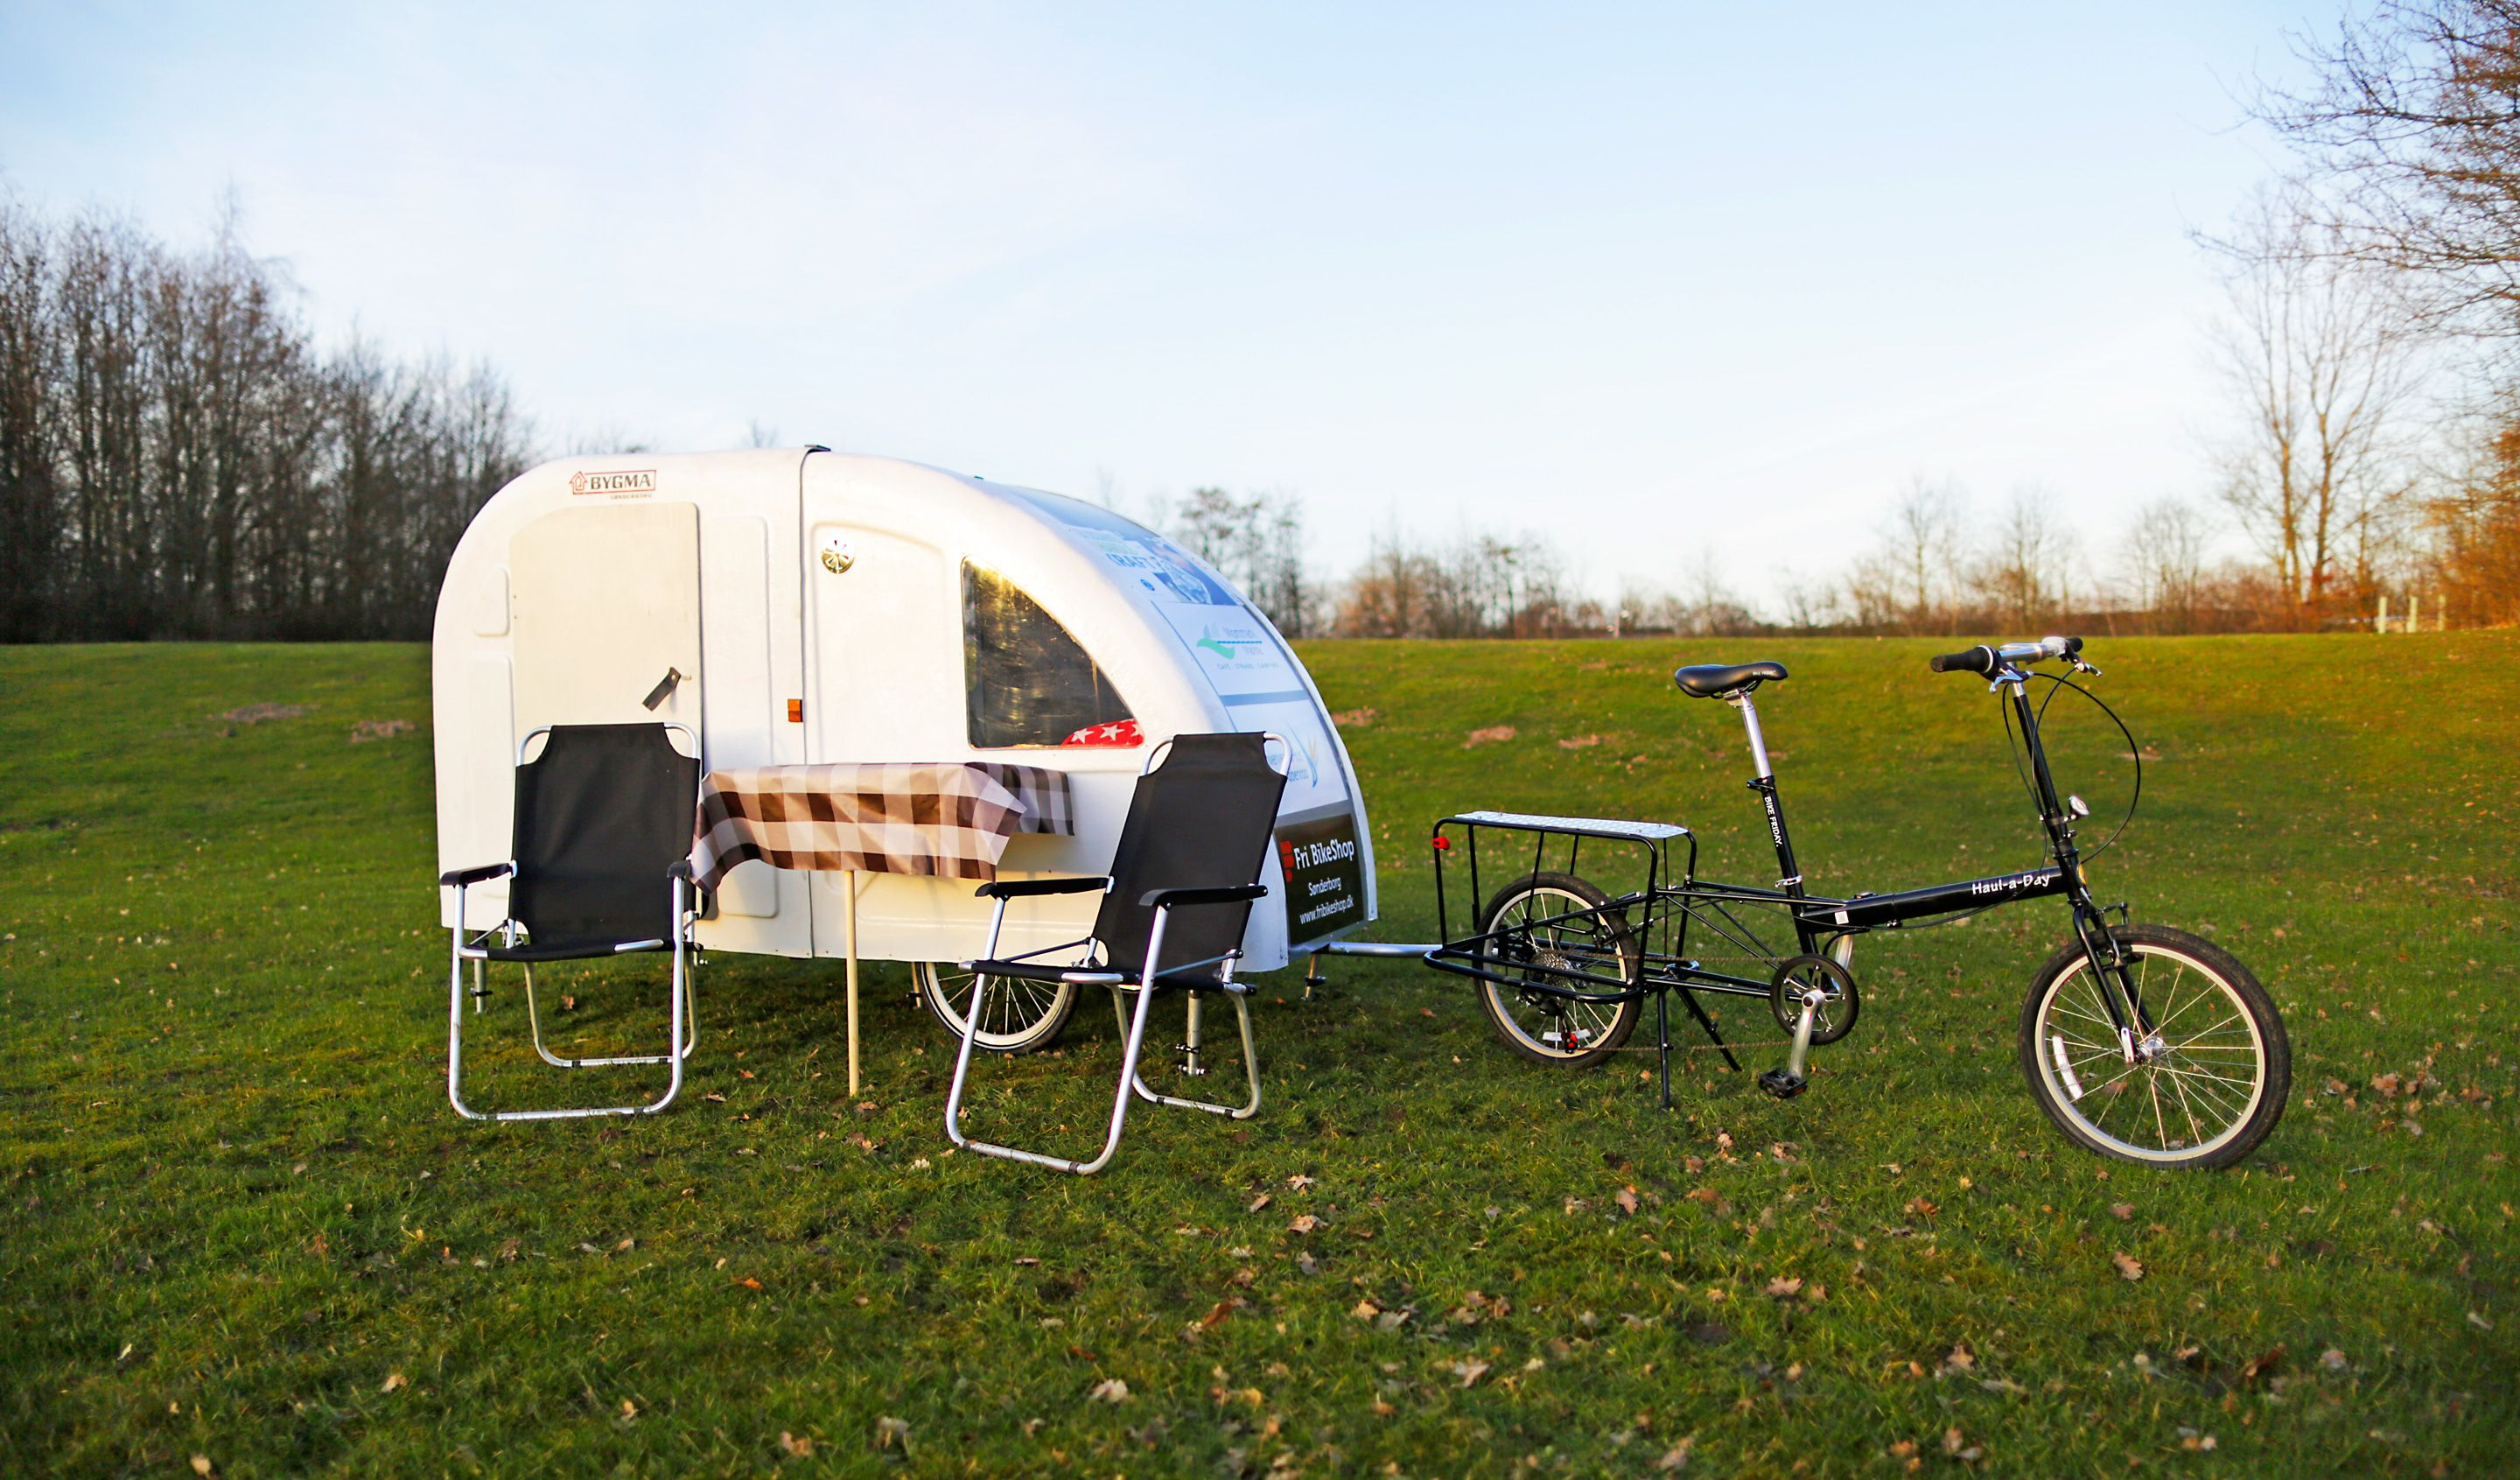 Micro Bicycle Camper - Tiny Camper That Attaches to Your Bike